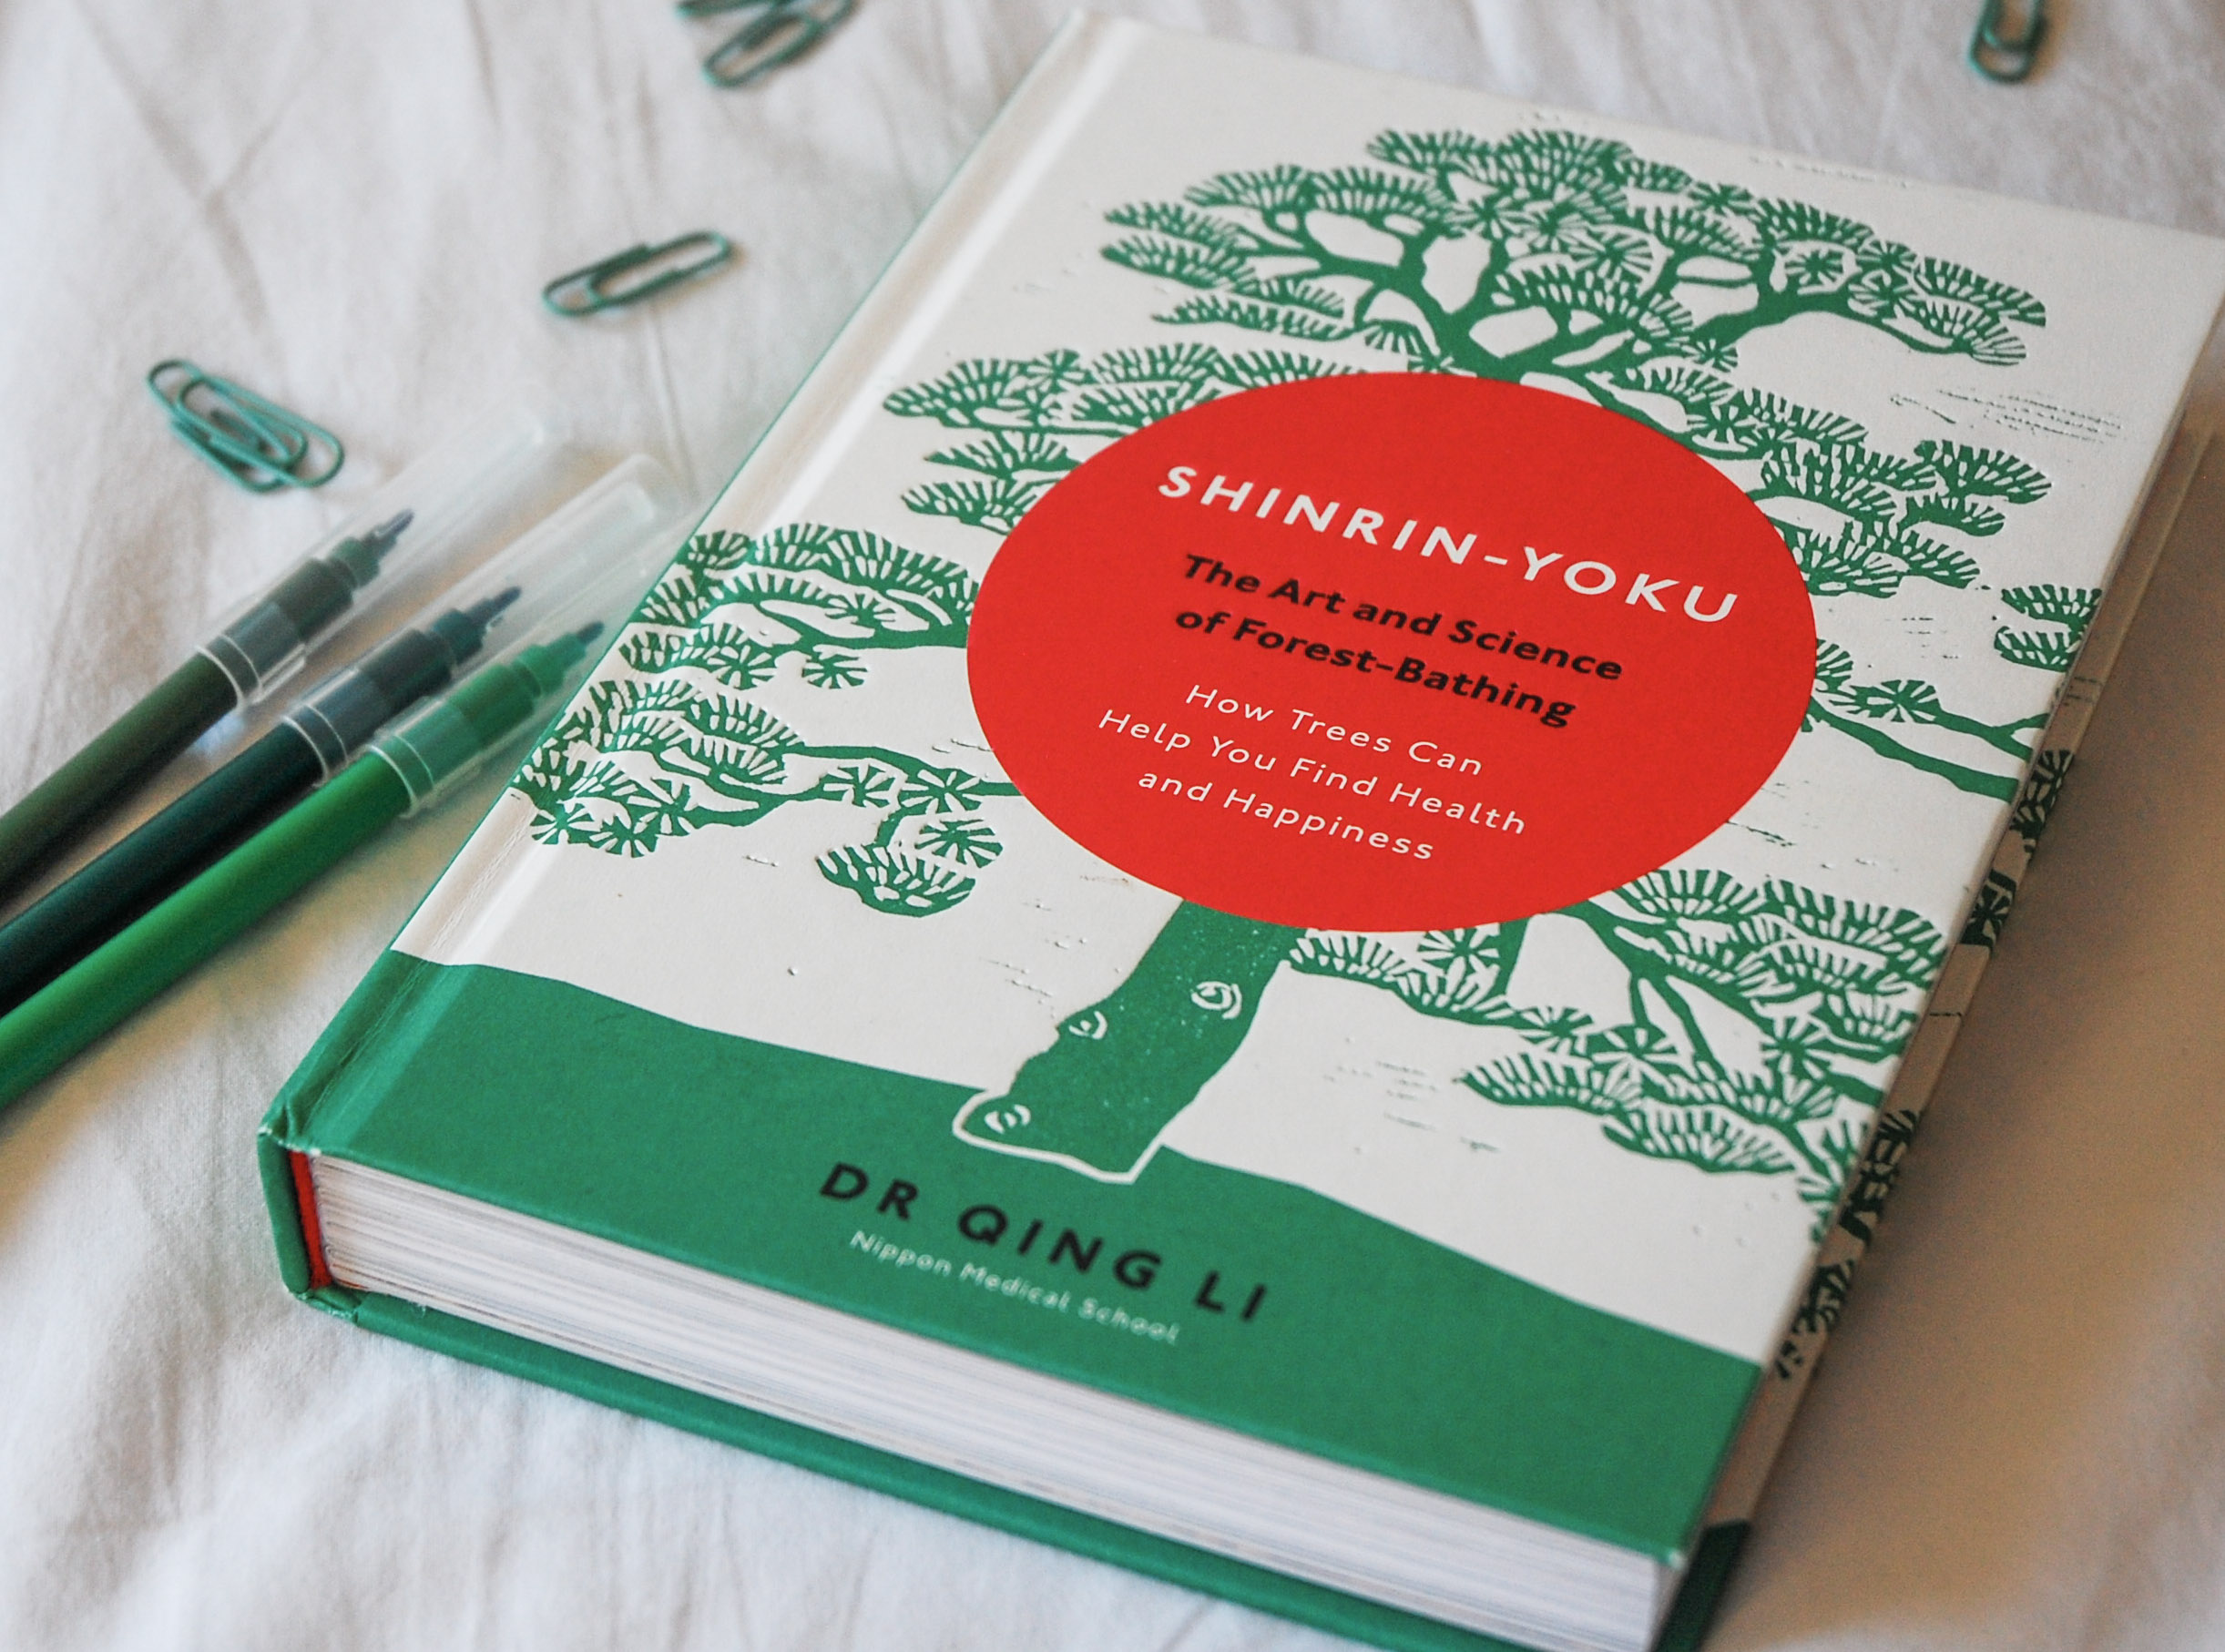 Shinrin-Yoku The Art and Science of Forest-Bathing by Dr Qing Li | BOOK REVIEW